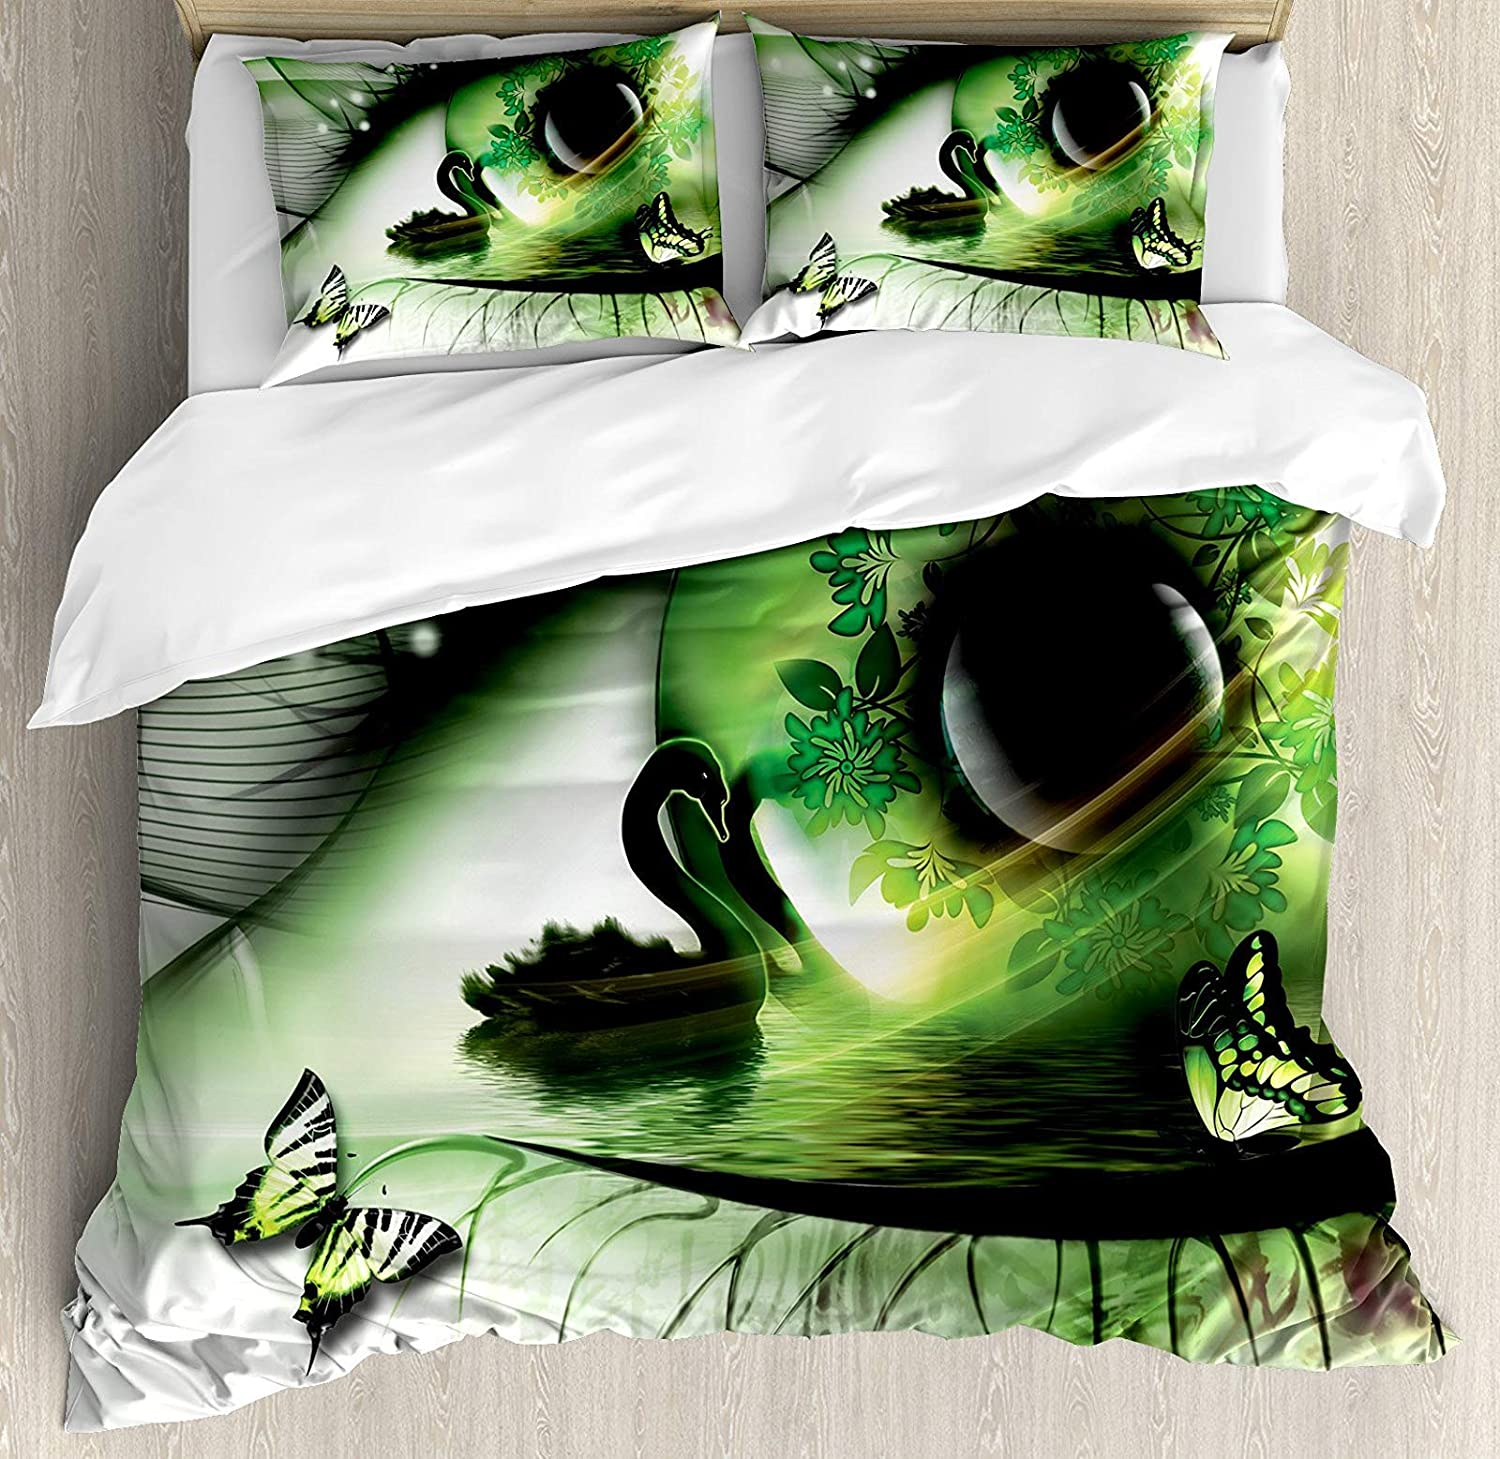 Abstract Home Decor 4 Pcs Bedding Set Twin Size, Abstract Natural Artwork with a Swan Floating in The Eye and Flying Butterflies All Season Duvet Cover Bed Set